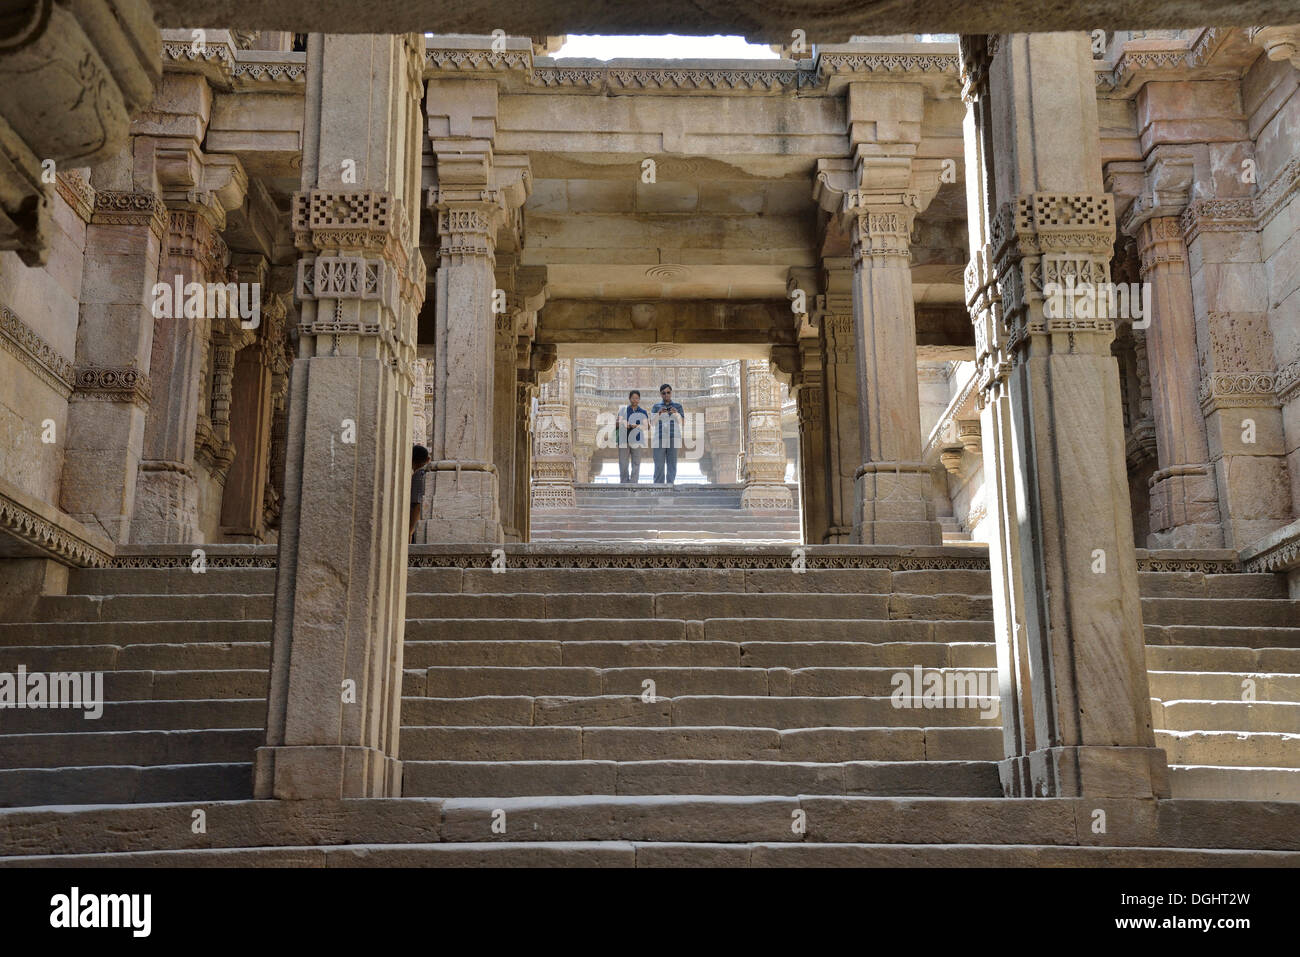 Adalaj Stepwell, Ahmedabad, Gujarat, India - Stock Image